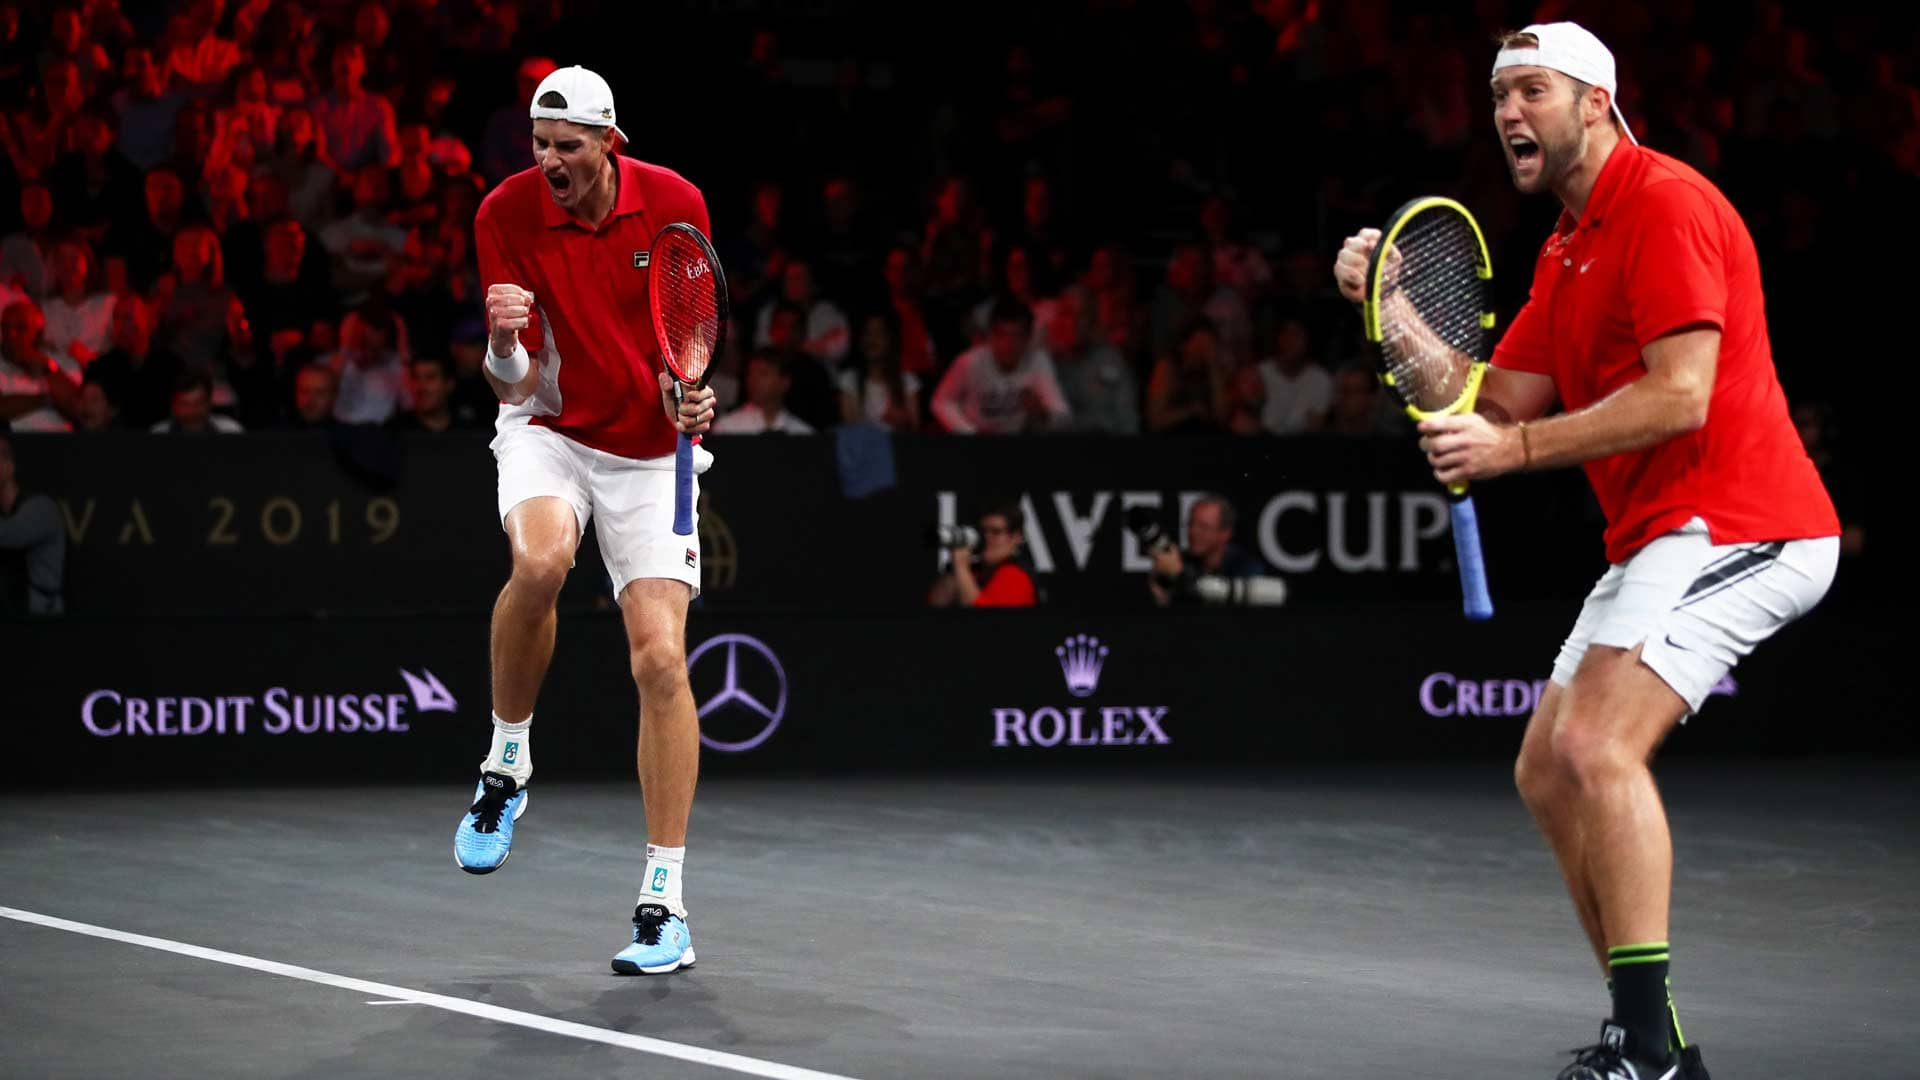 <a href='https://www.atptour.com/en/players/john-isner/i186/overview'>John Isner</a> and <a href='https://www.atptour.com/en/players/jack-sock/sm25/overview'>Jack Sock</a> celebrate at 2019 <a href='https://www.atptour.com/en/tournaments/laver-cup/9210/overview'>Laver Cup</a>